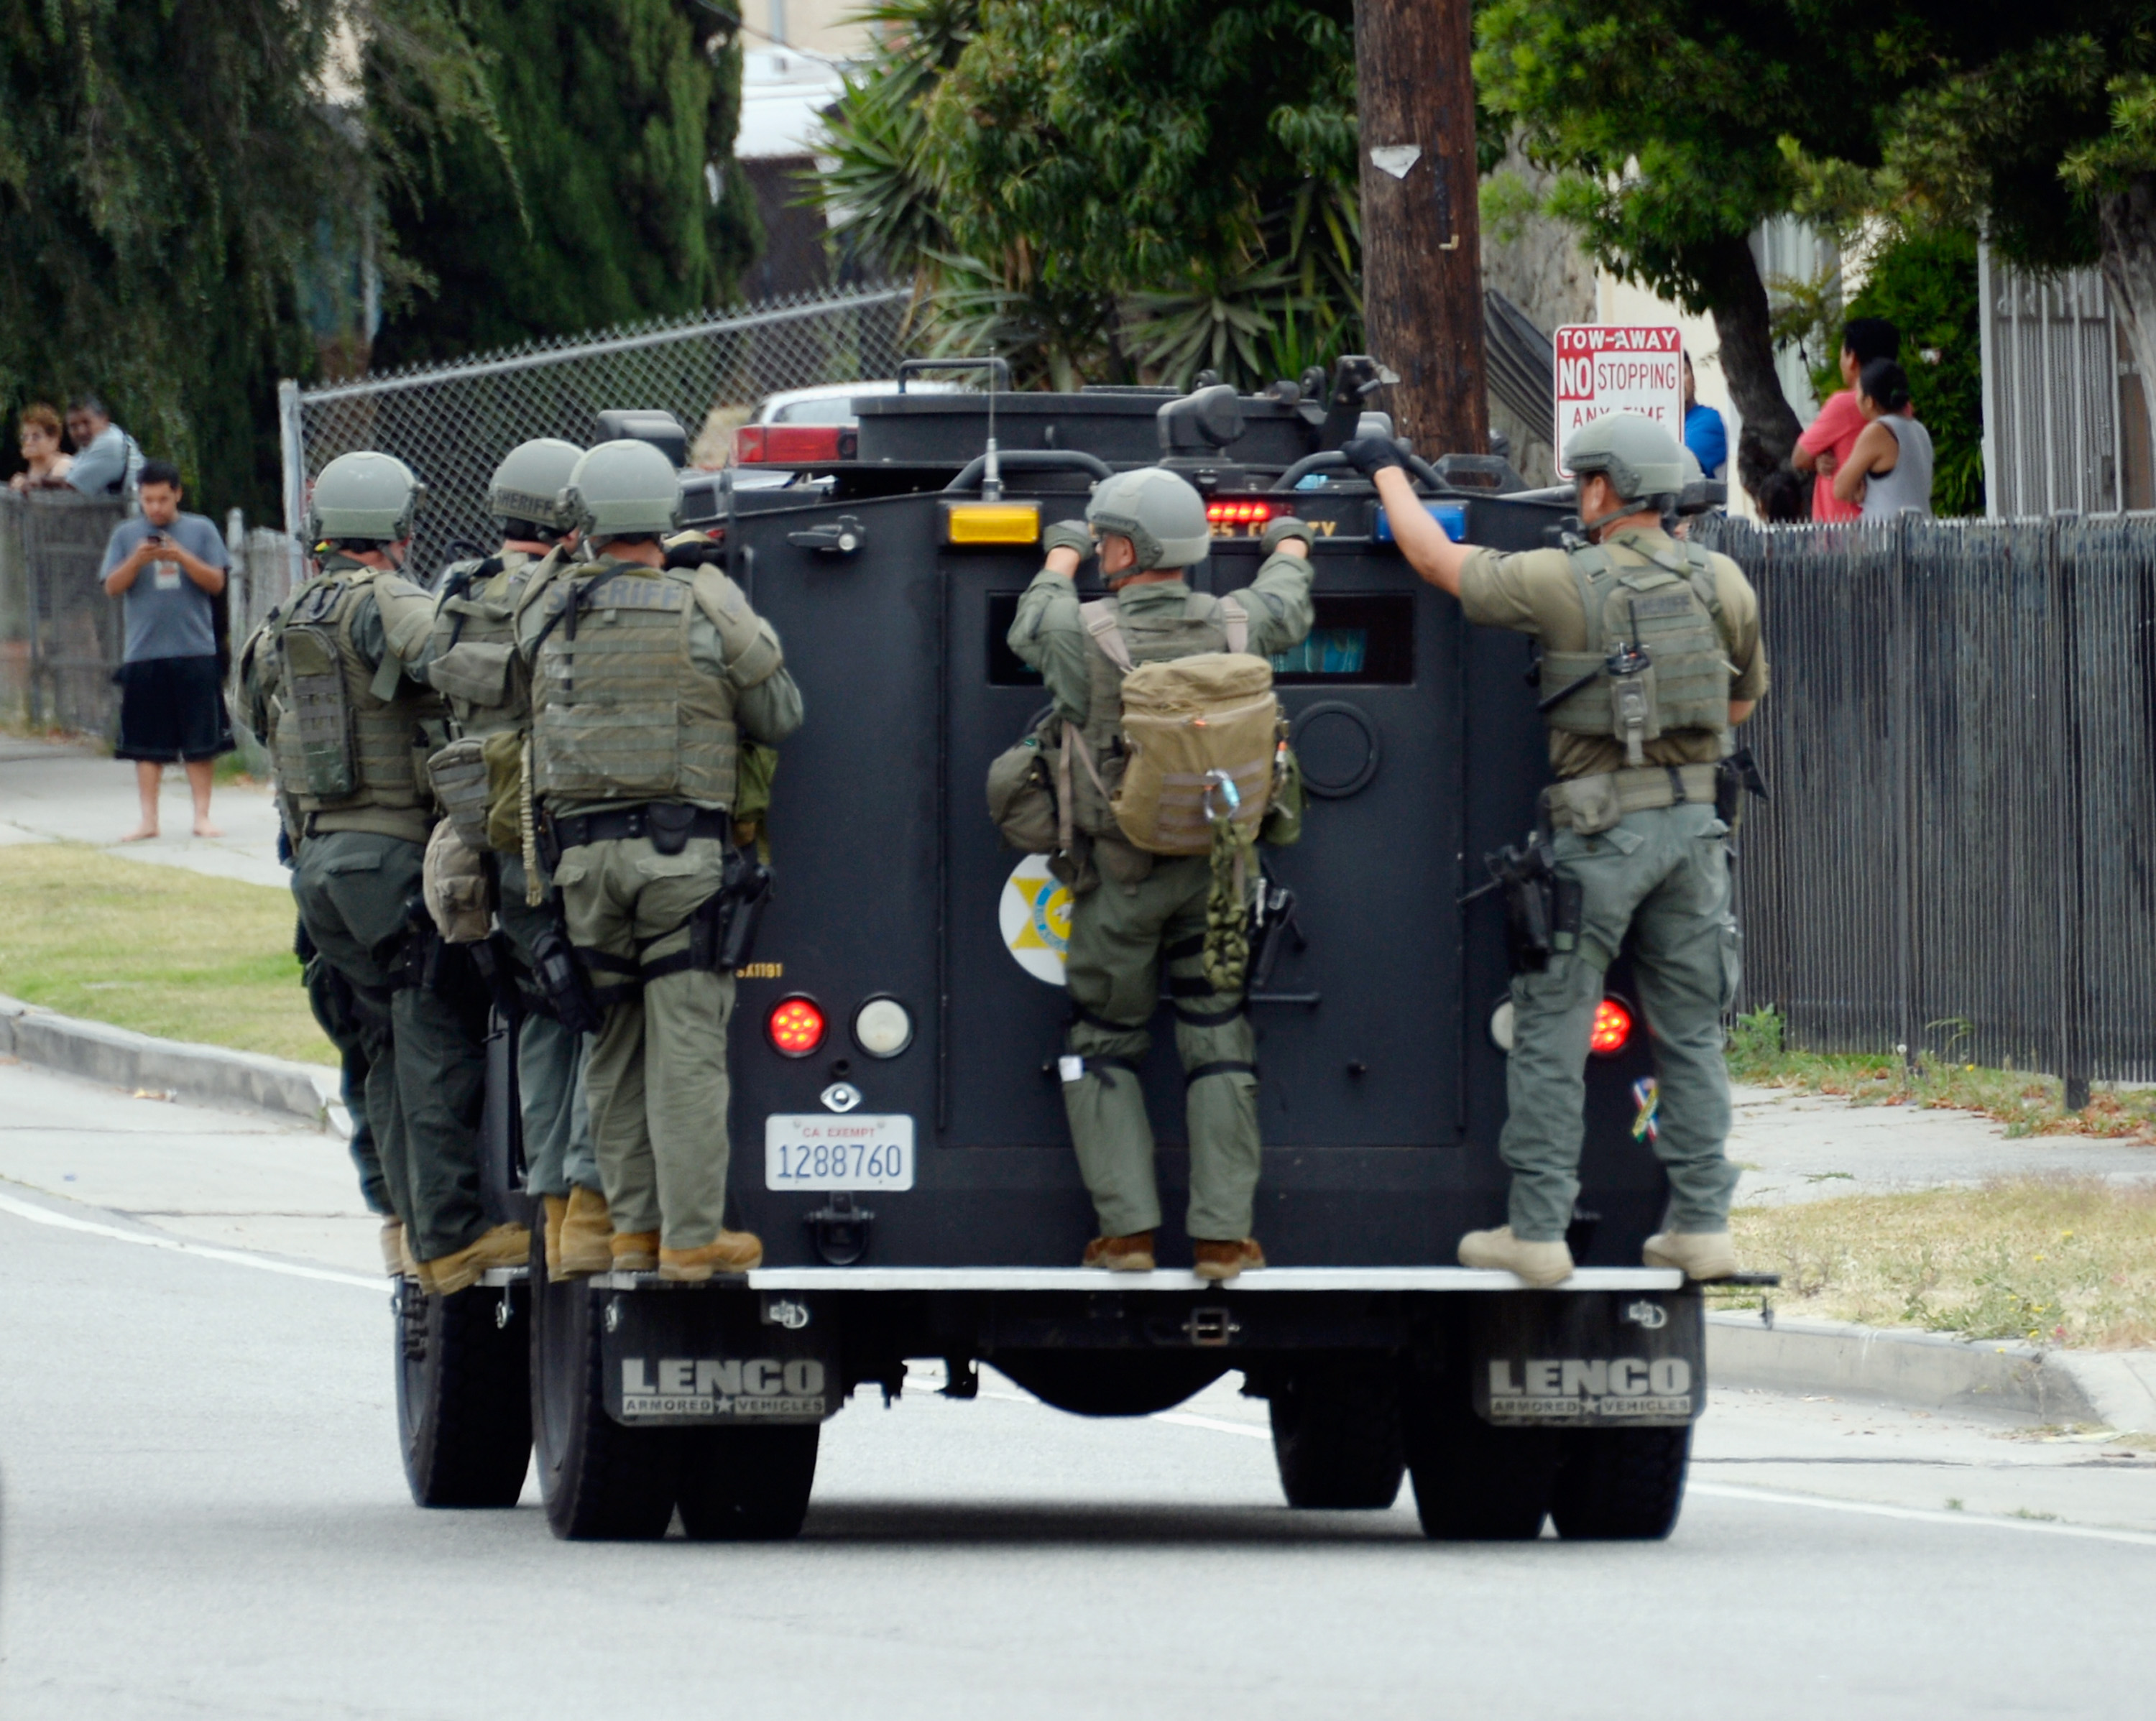 Swatting over Call of Duty game results in deadly police shooting of Kansas man